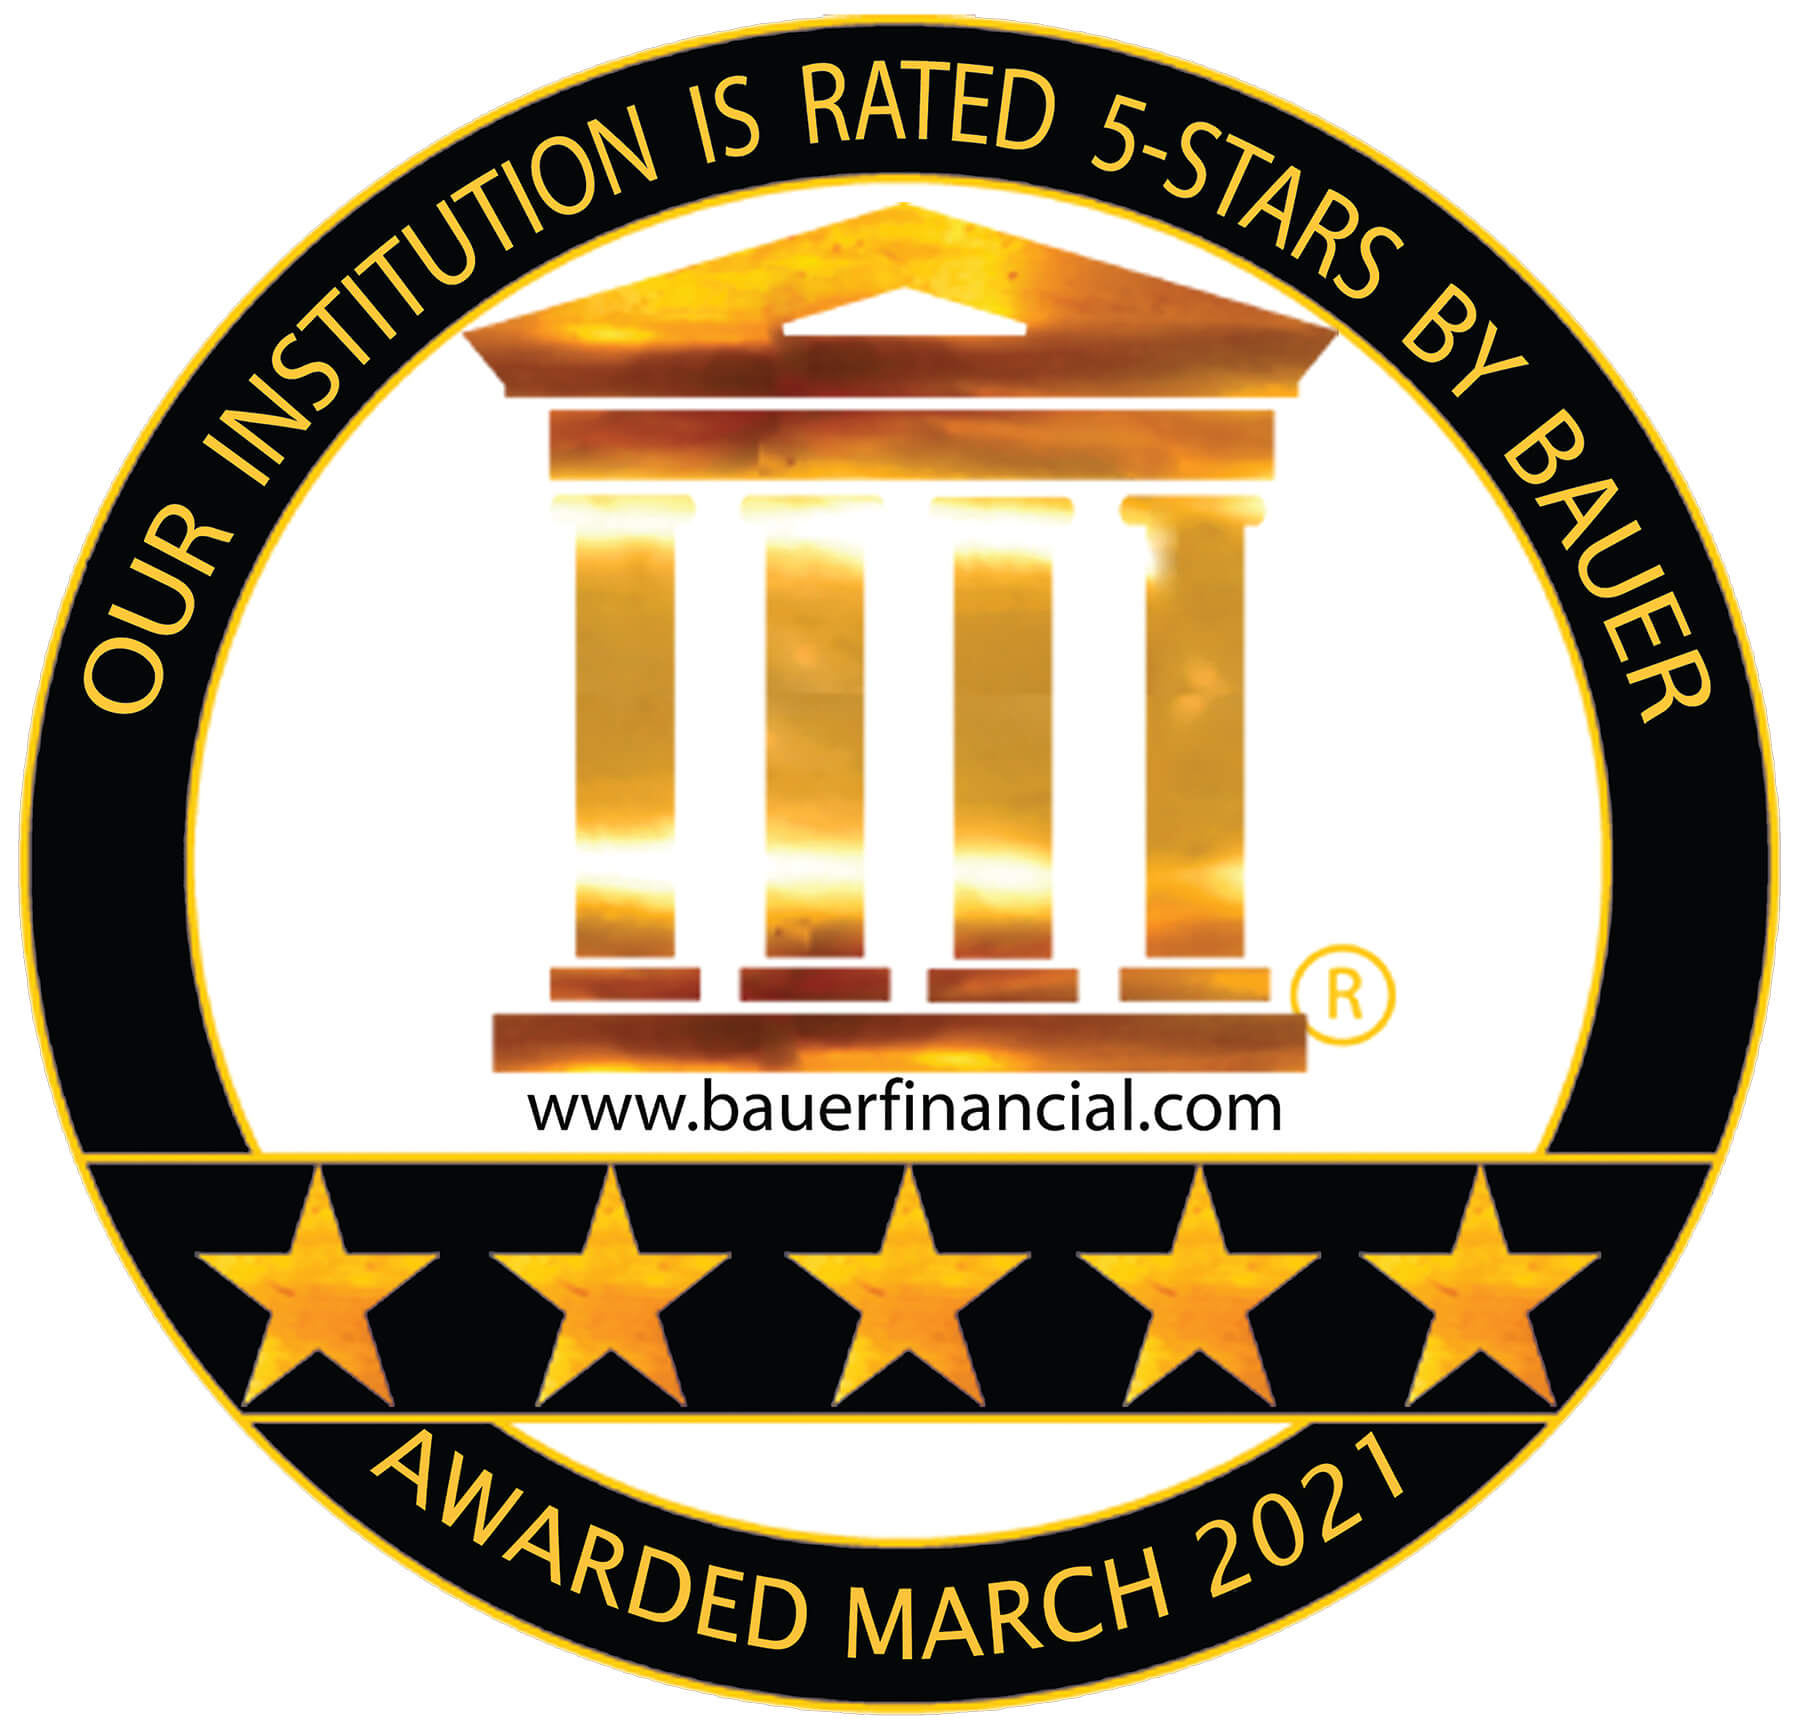 Our Institution is Rated 5-Stars by Bauer